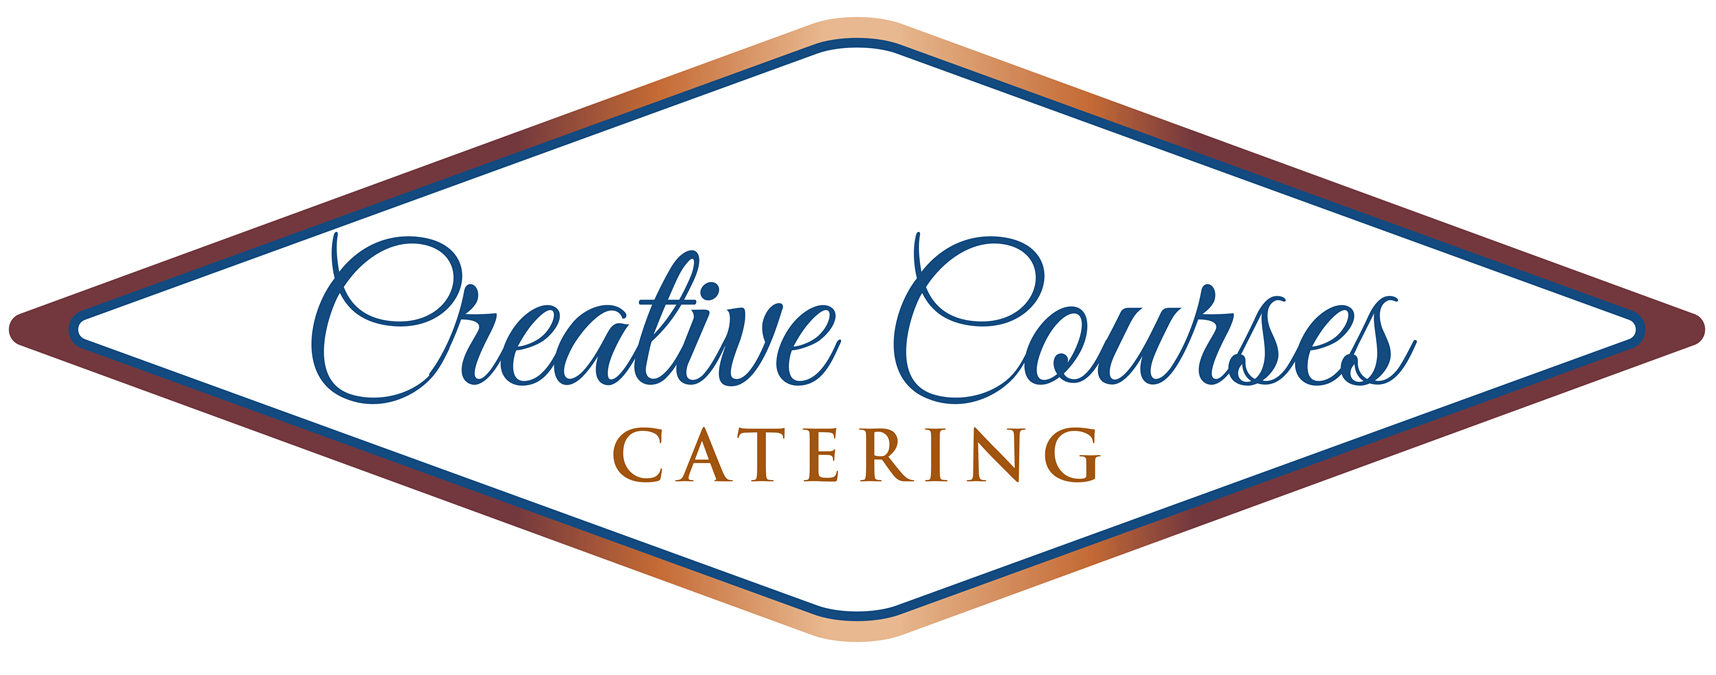 Creative Courses Catering